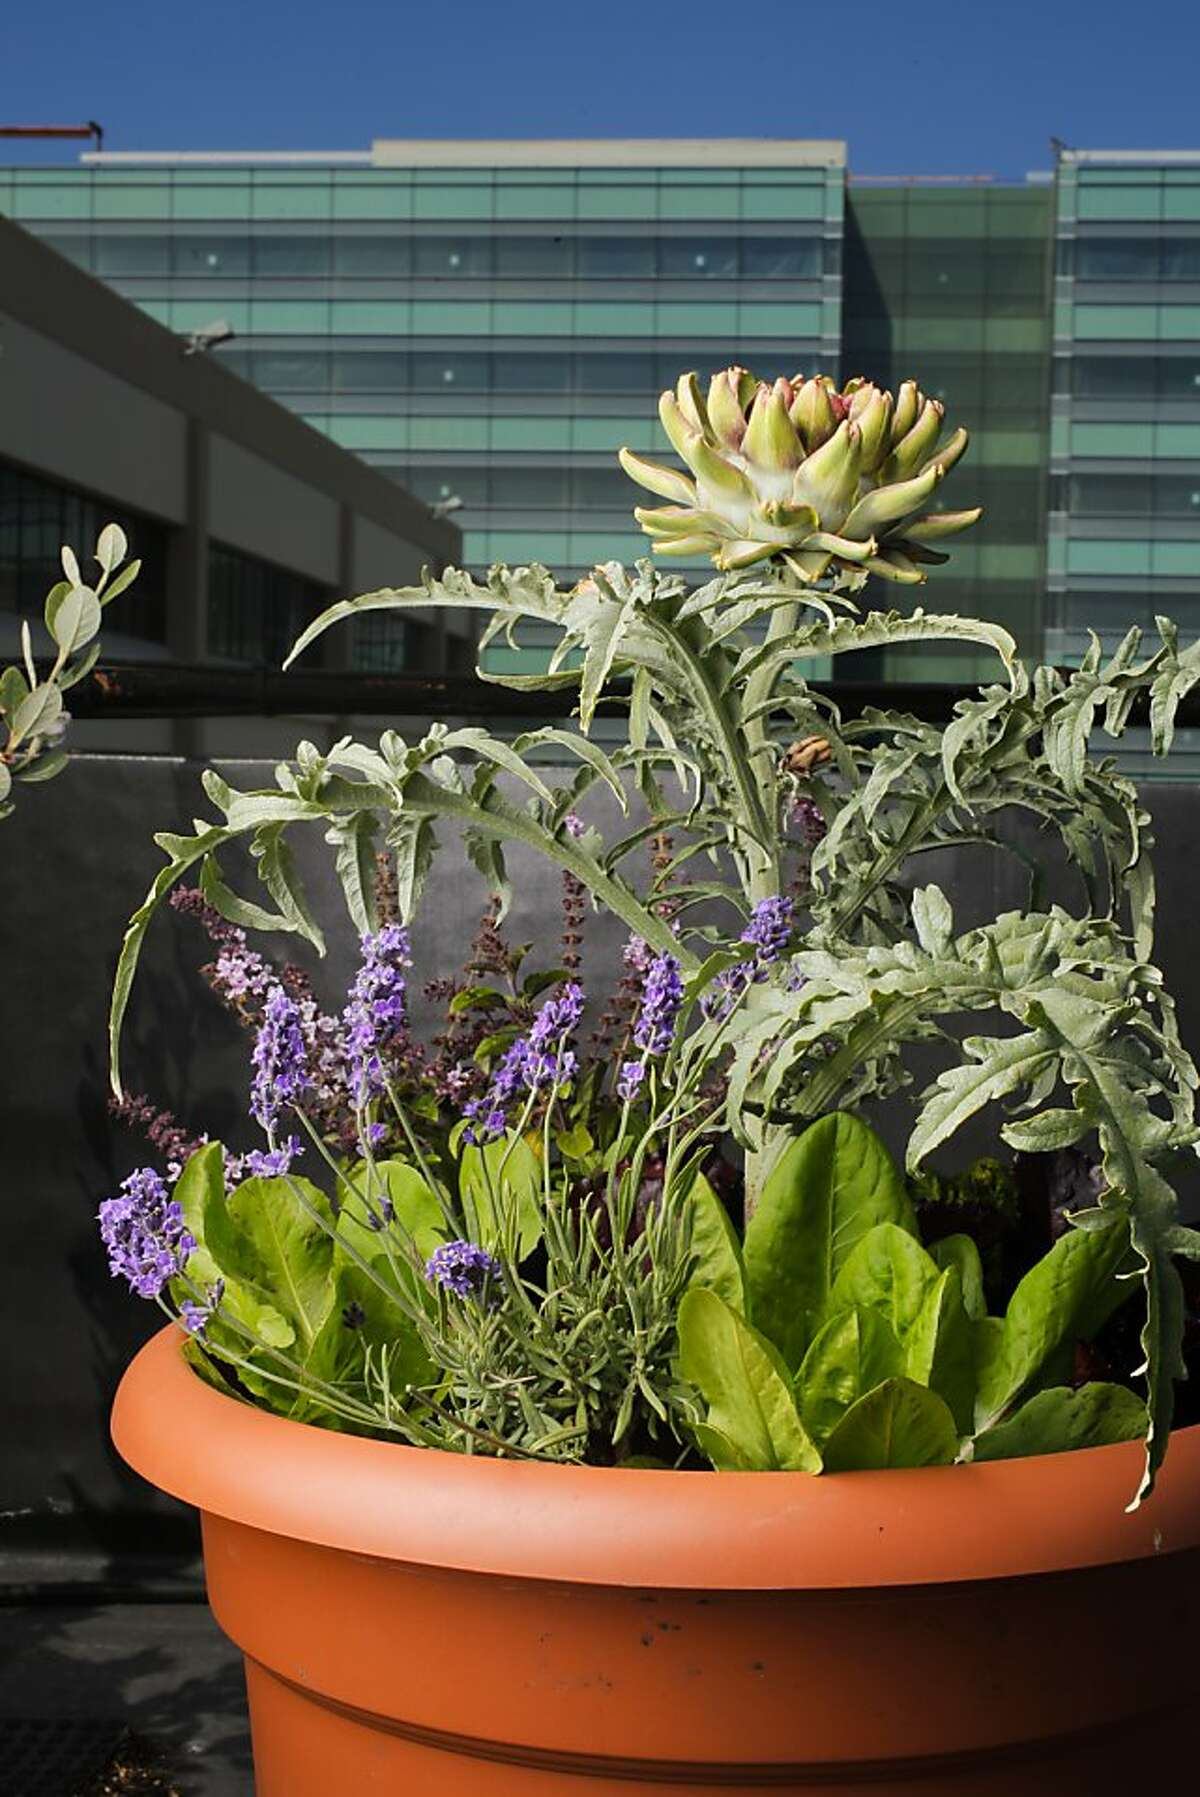 The garden features artichoke with 'African Blue' basil, lavender, endive and lettuce.